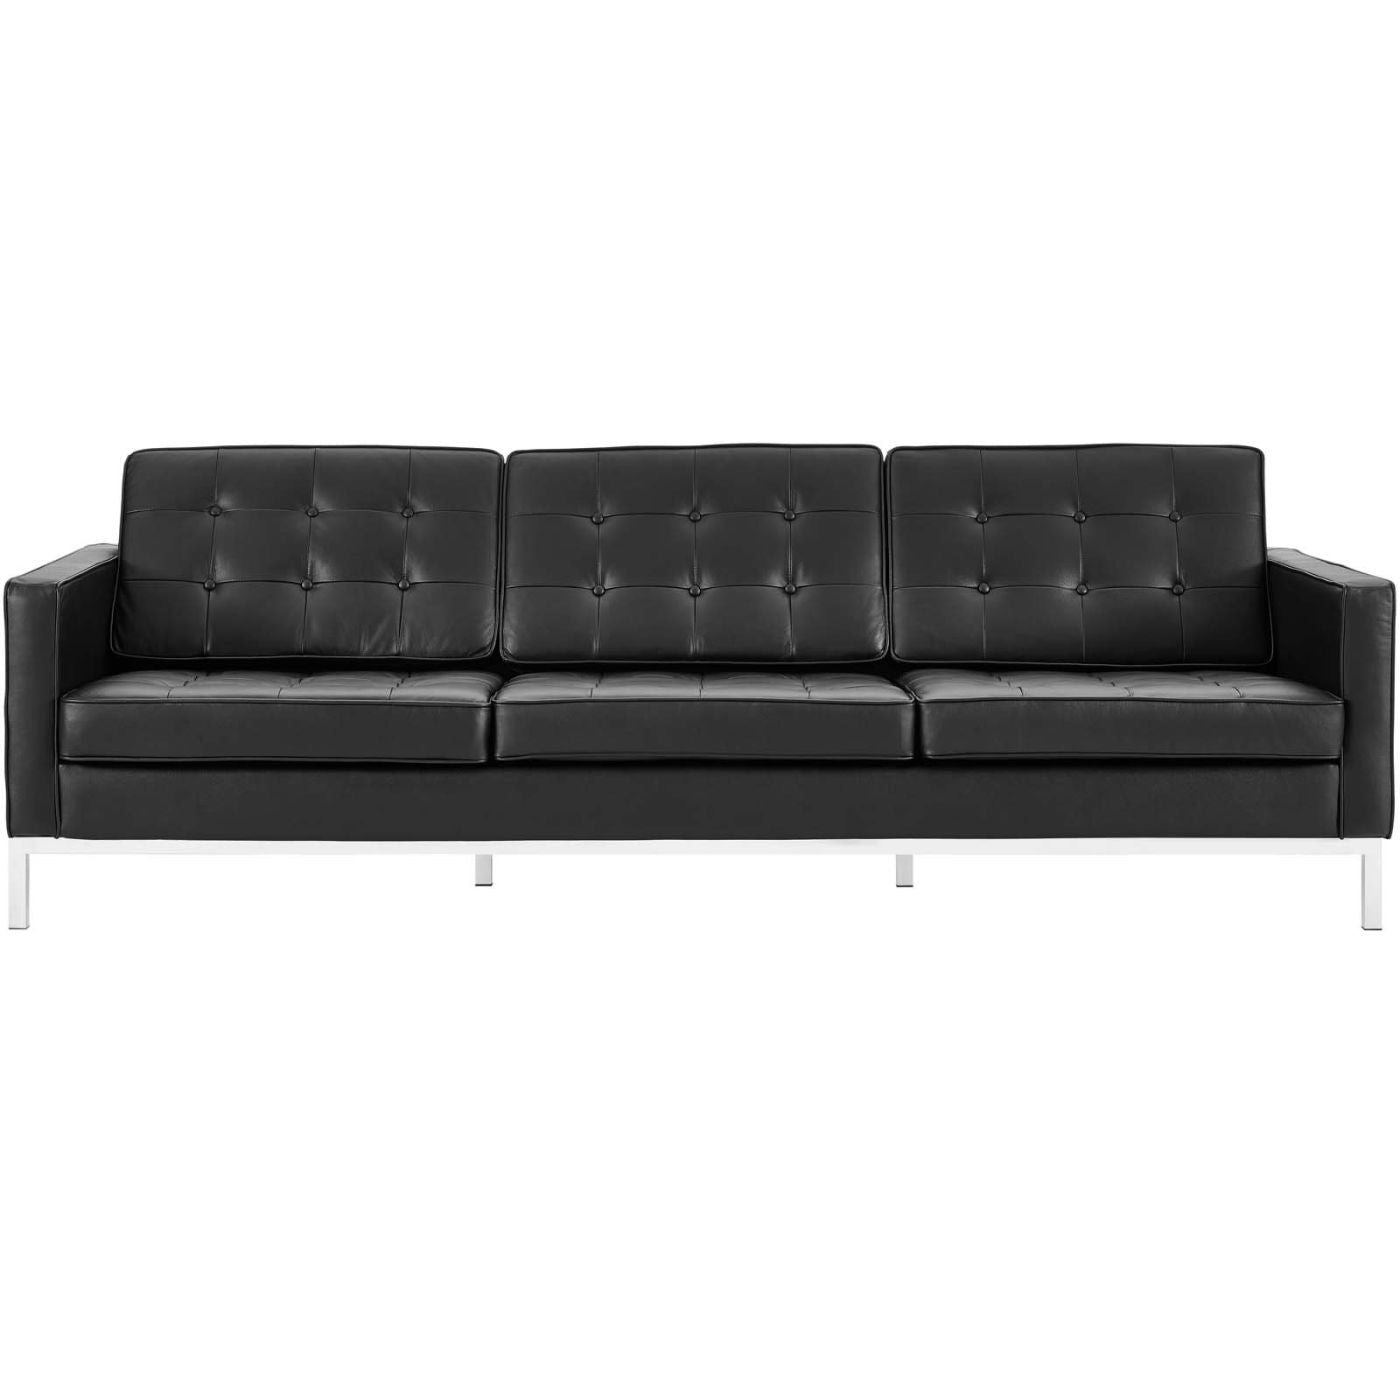 Modway Sofas on sale. EEI-2779-BLK Loft Mid-Century Modern Genuine Leather  Sofa only Only $1,173.30 at Contemporary Furniture Warehouse